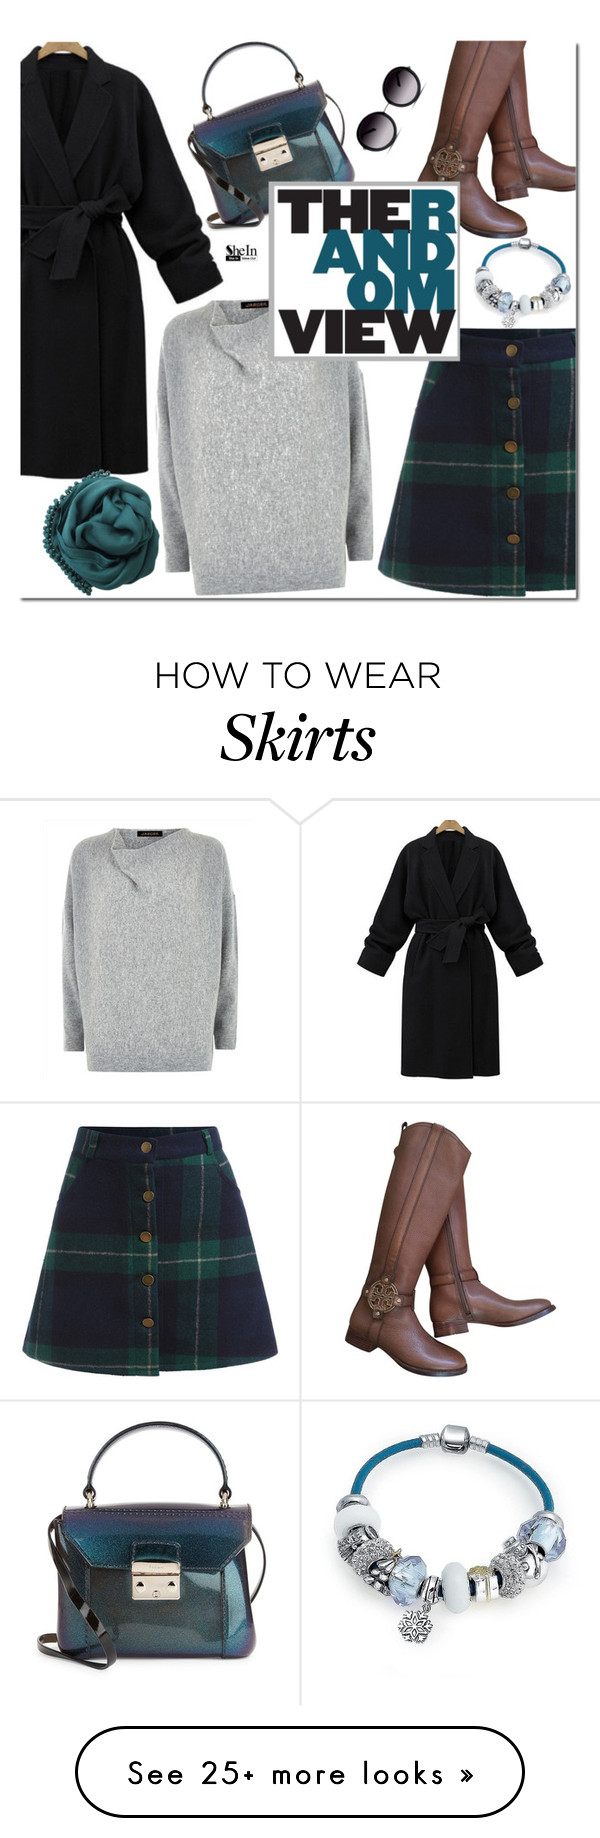 """""""Teal look"""" by mada-malureanu on Polyvore featuring Tory Burch, Jaeger, Furla, Bling Jewelry, Bajra, GlassesUSA, women's clothing, women, female and woman"""